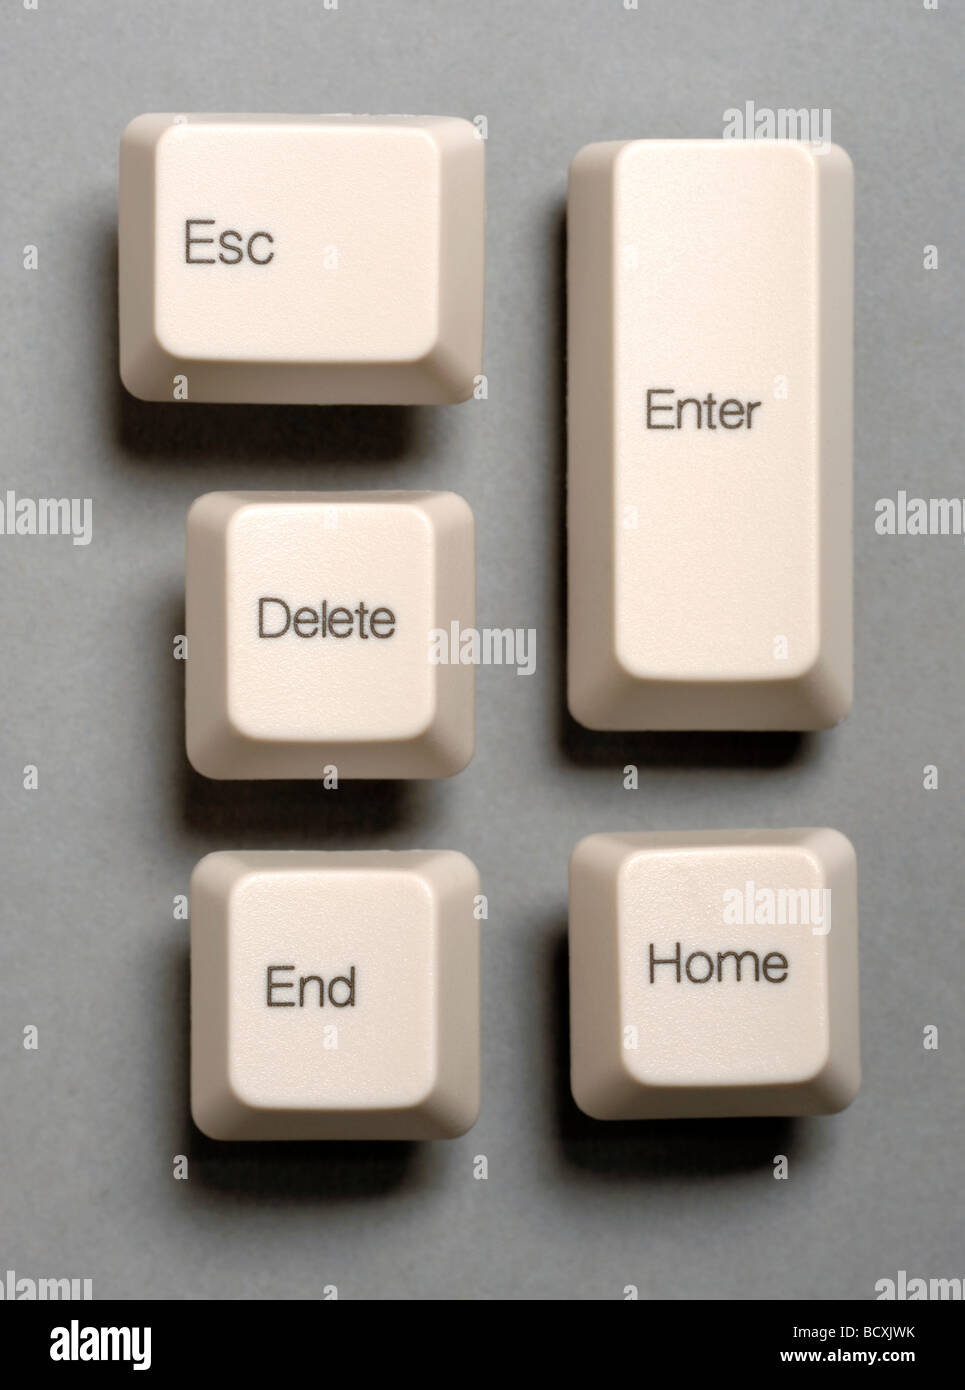 Computer keyboard keys - Stock Image